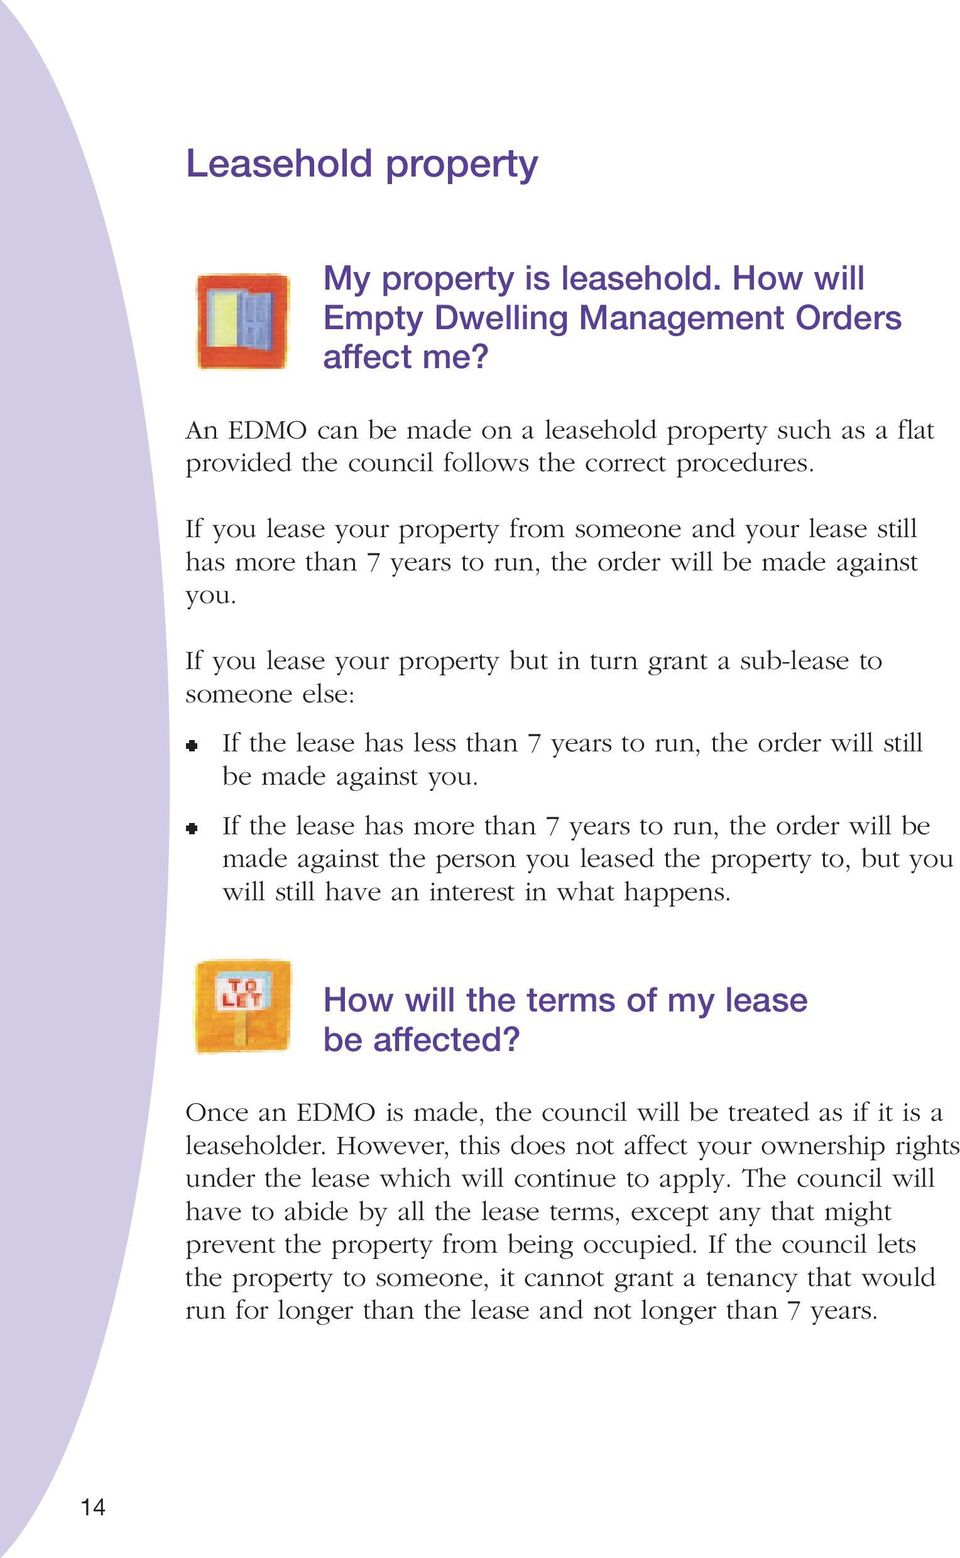 If you lease your property from someone and your lease still has more than 7 years to run, the order will be made against you.